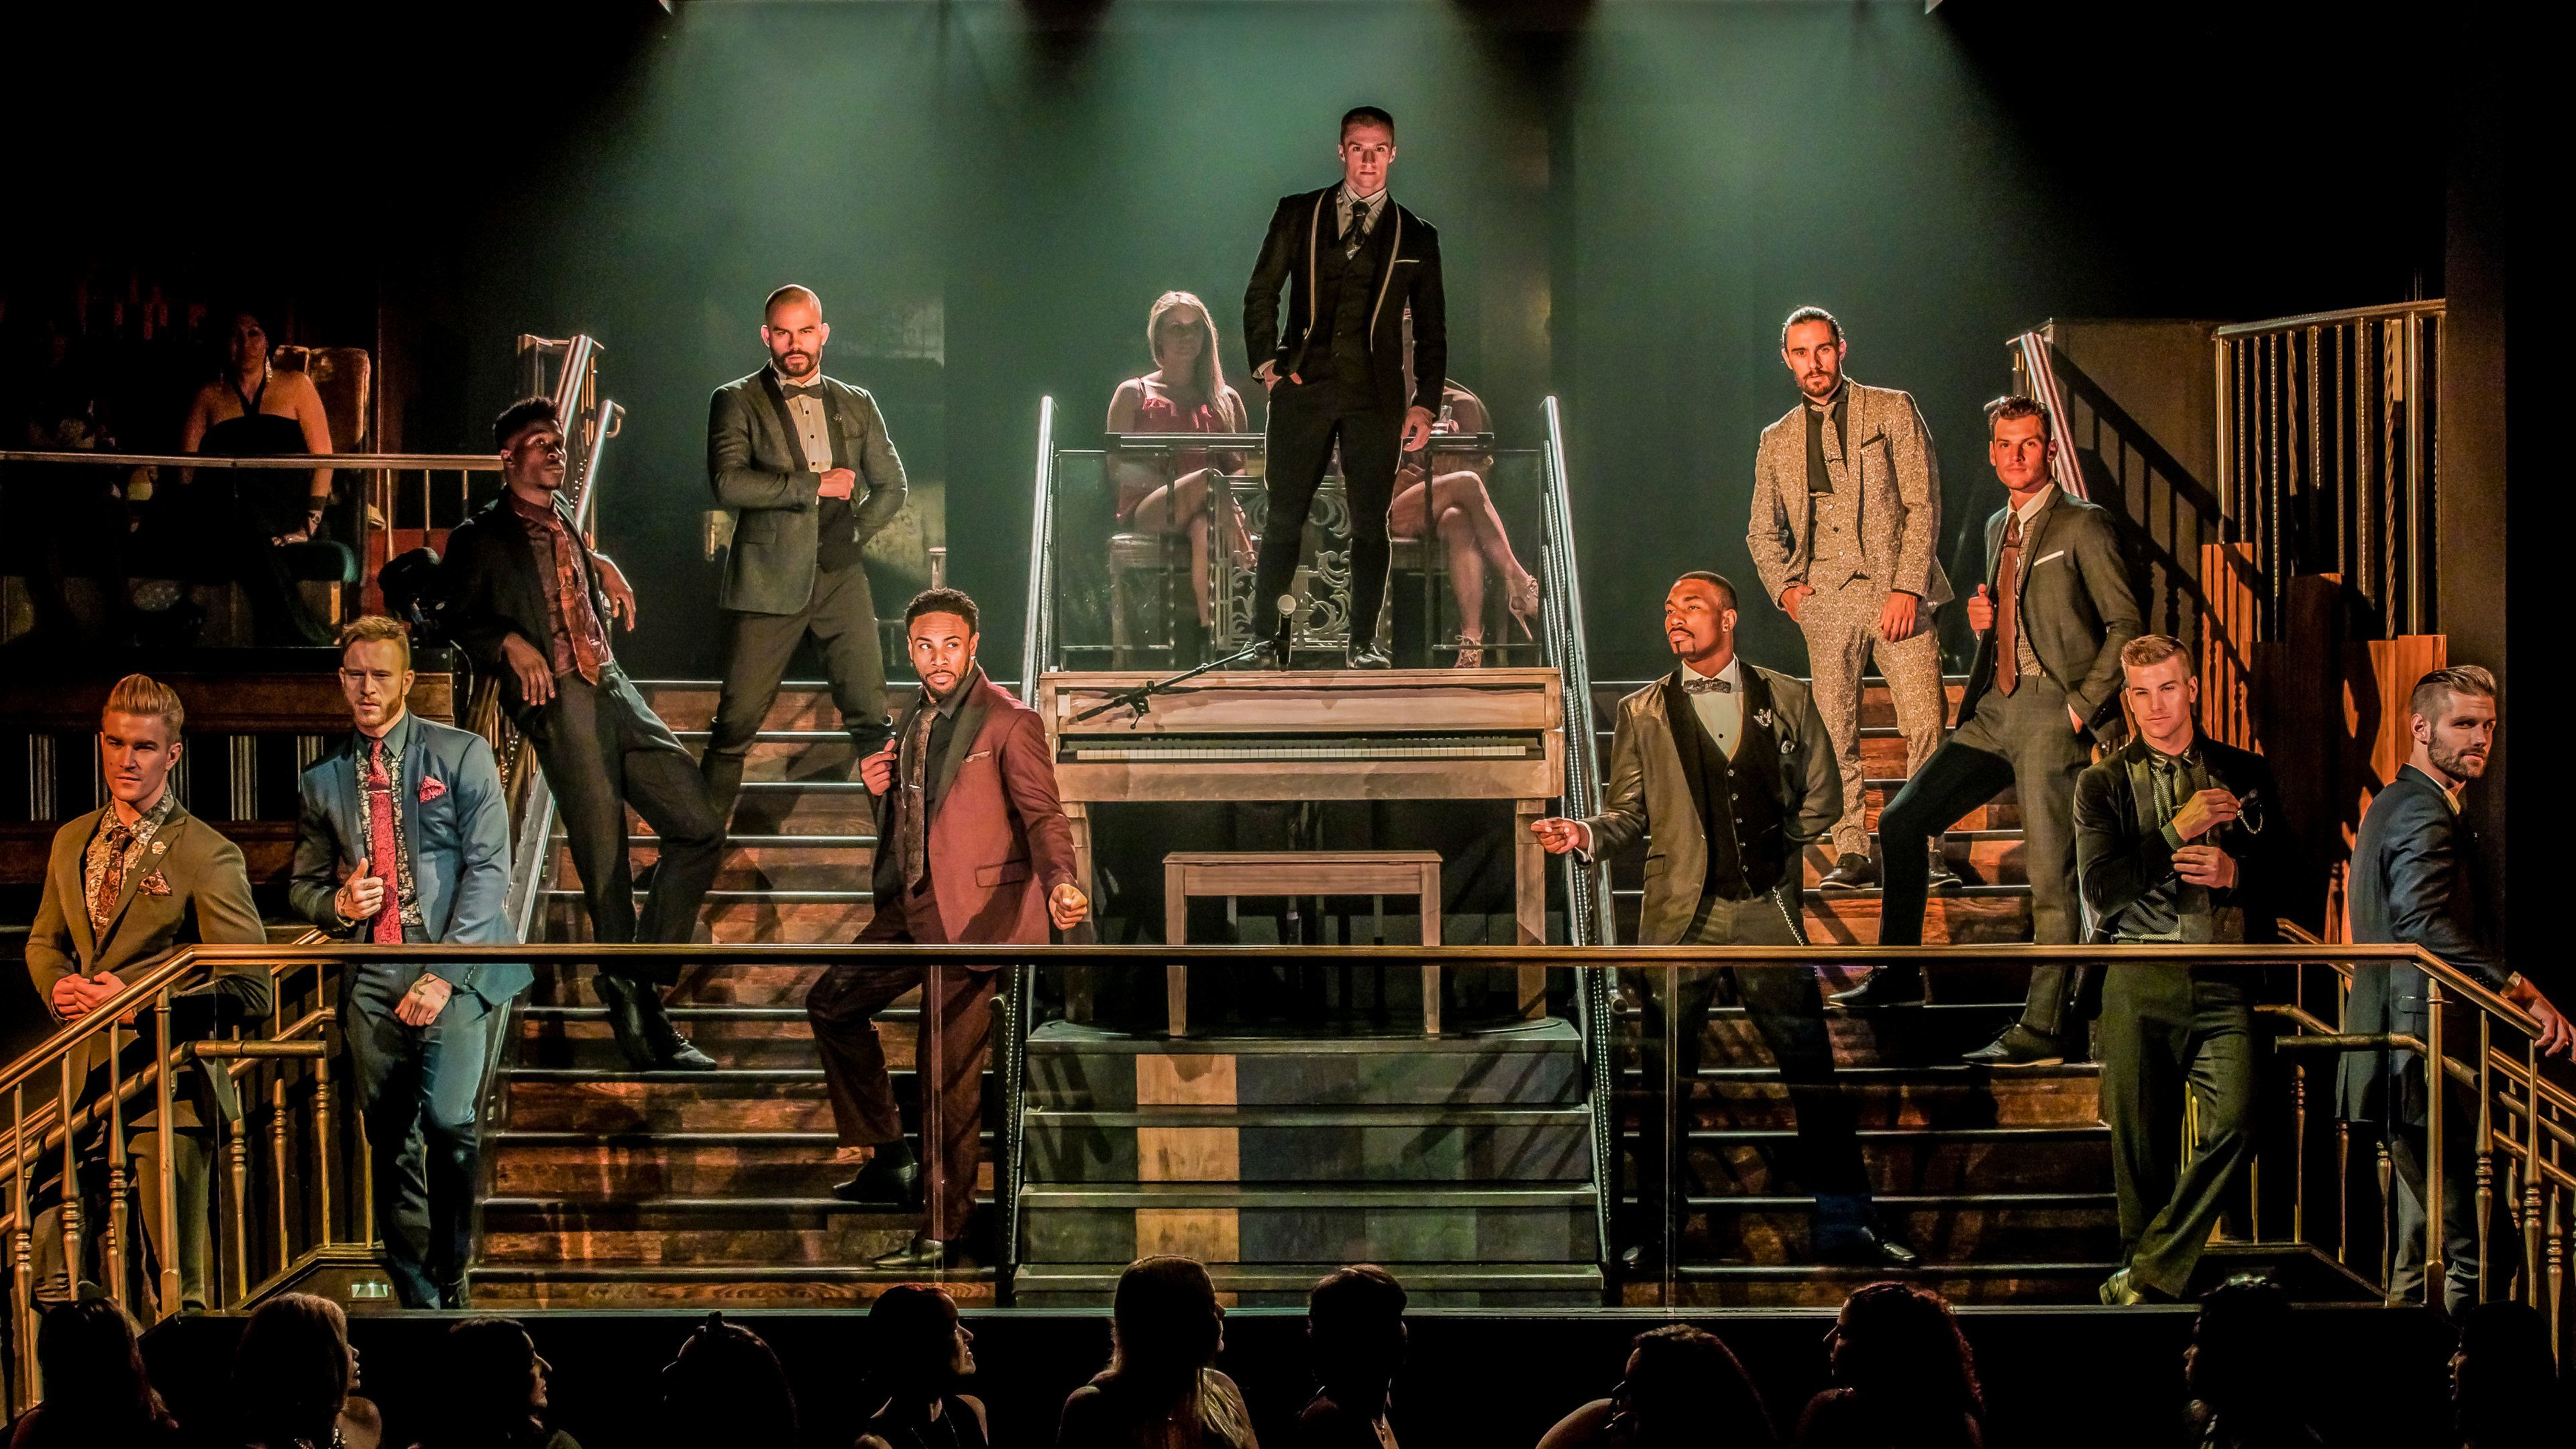 Magic Mike performers dressed in suits at beginning of show in Hard Rock Hotel & Casino Las Vegas